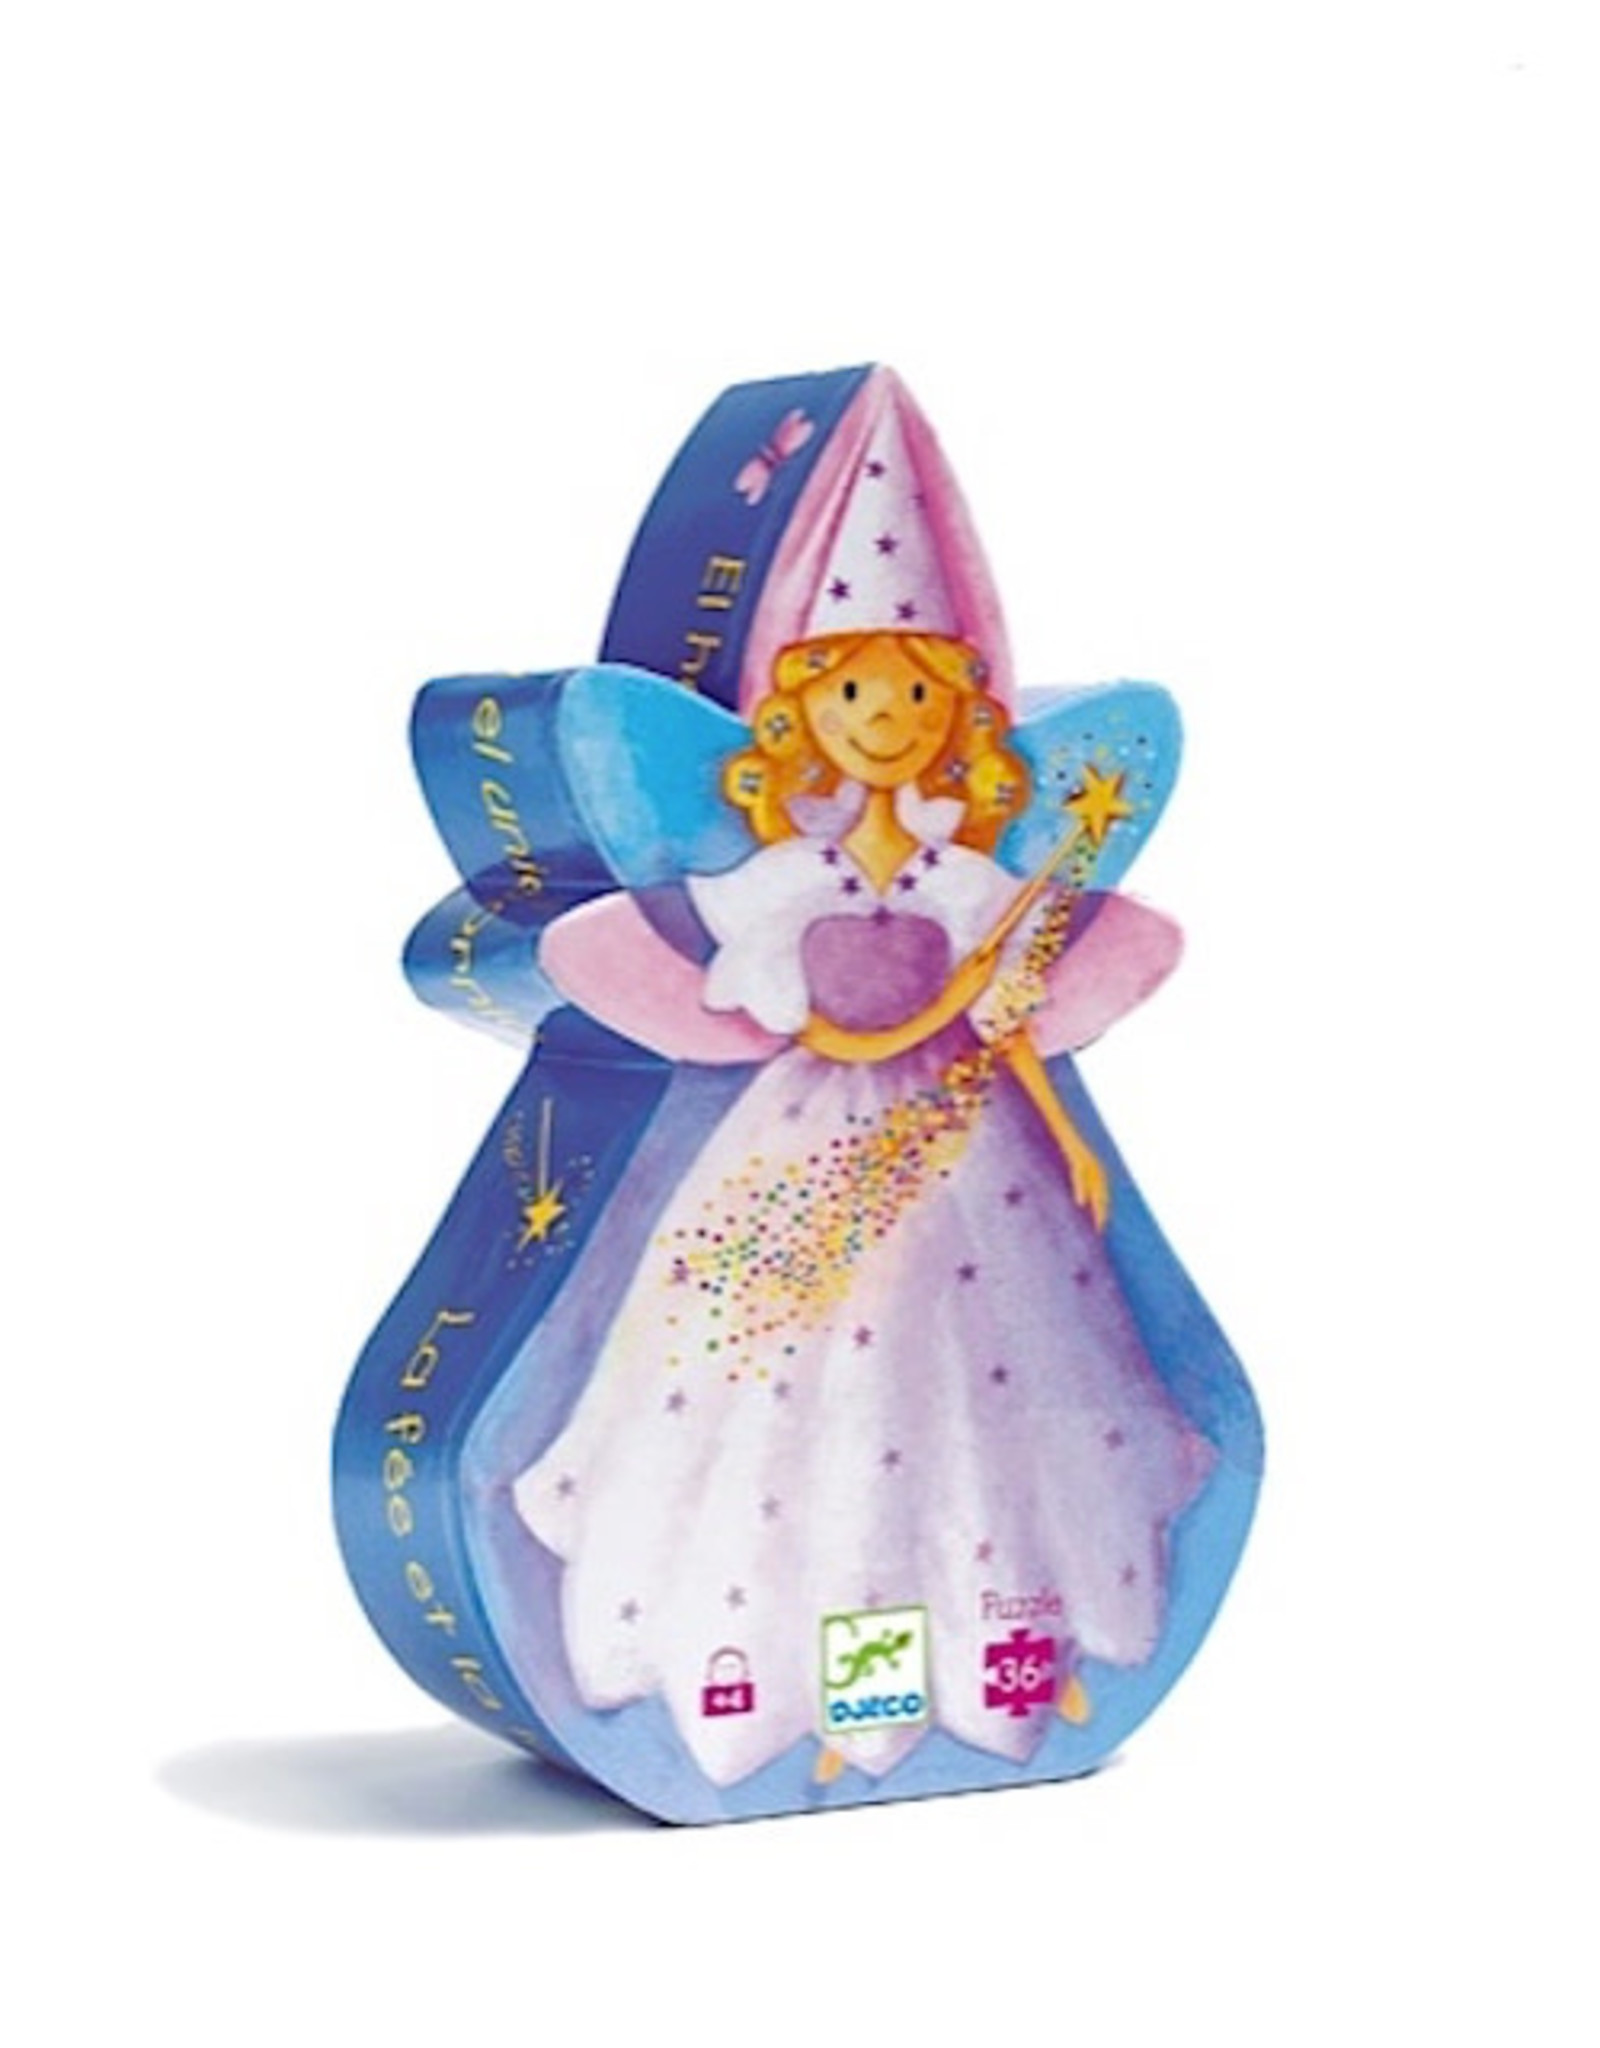 Djeco Silhouette Puzzles - The Fairy And The Unicorn - 36pcs